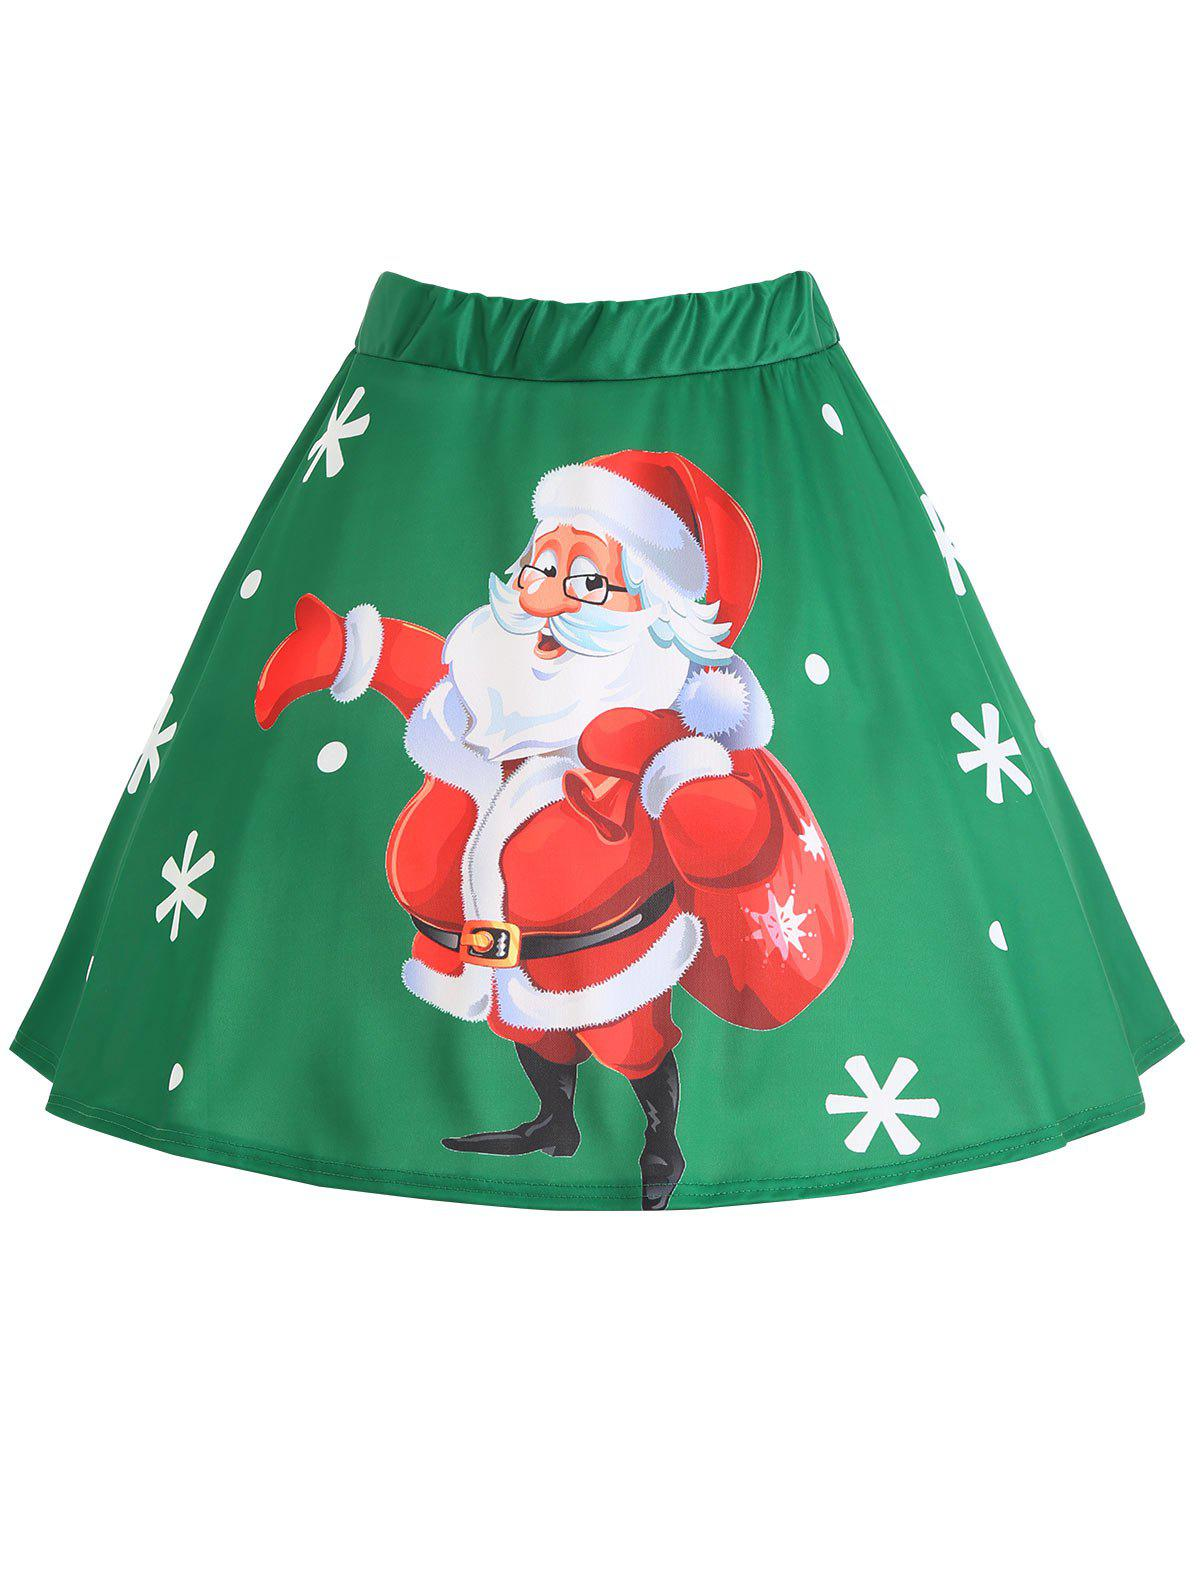 Plus Size Christmas Santa Claus Snowflake Print SkirtWOMEN<br><br>Size: 5XL; Color: GREEN; Material: Polyester; Length: Mini; Silhouette: A-Line; Pattern Type: Print; Season: Winter; With Belt: No; Weight: 0.2600kg; Package Contents: 1 x Skirt;